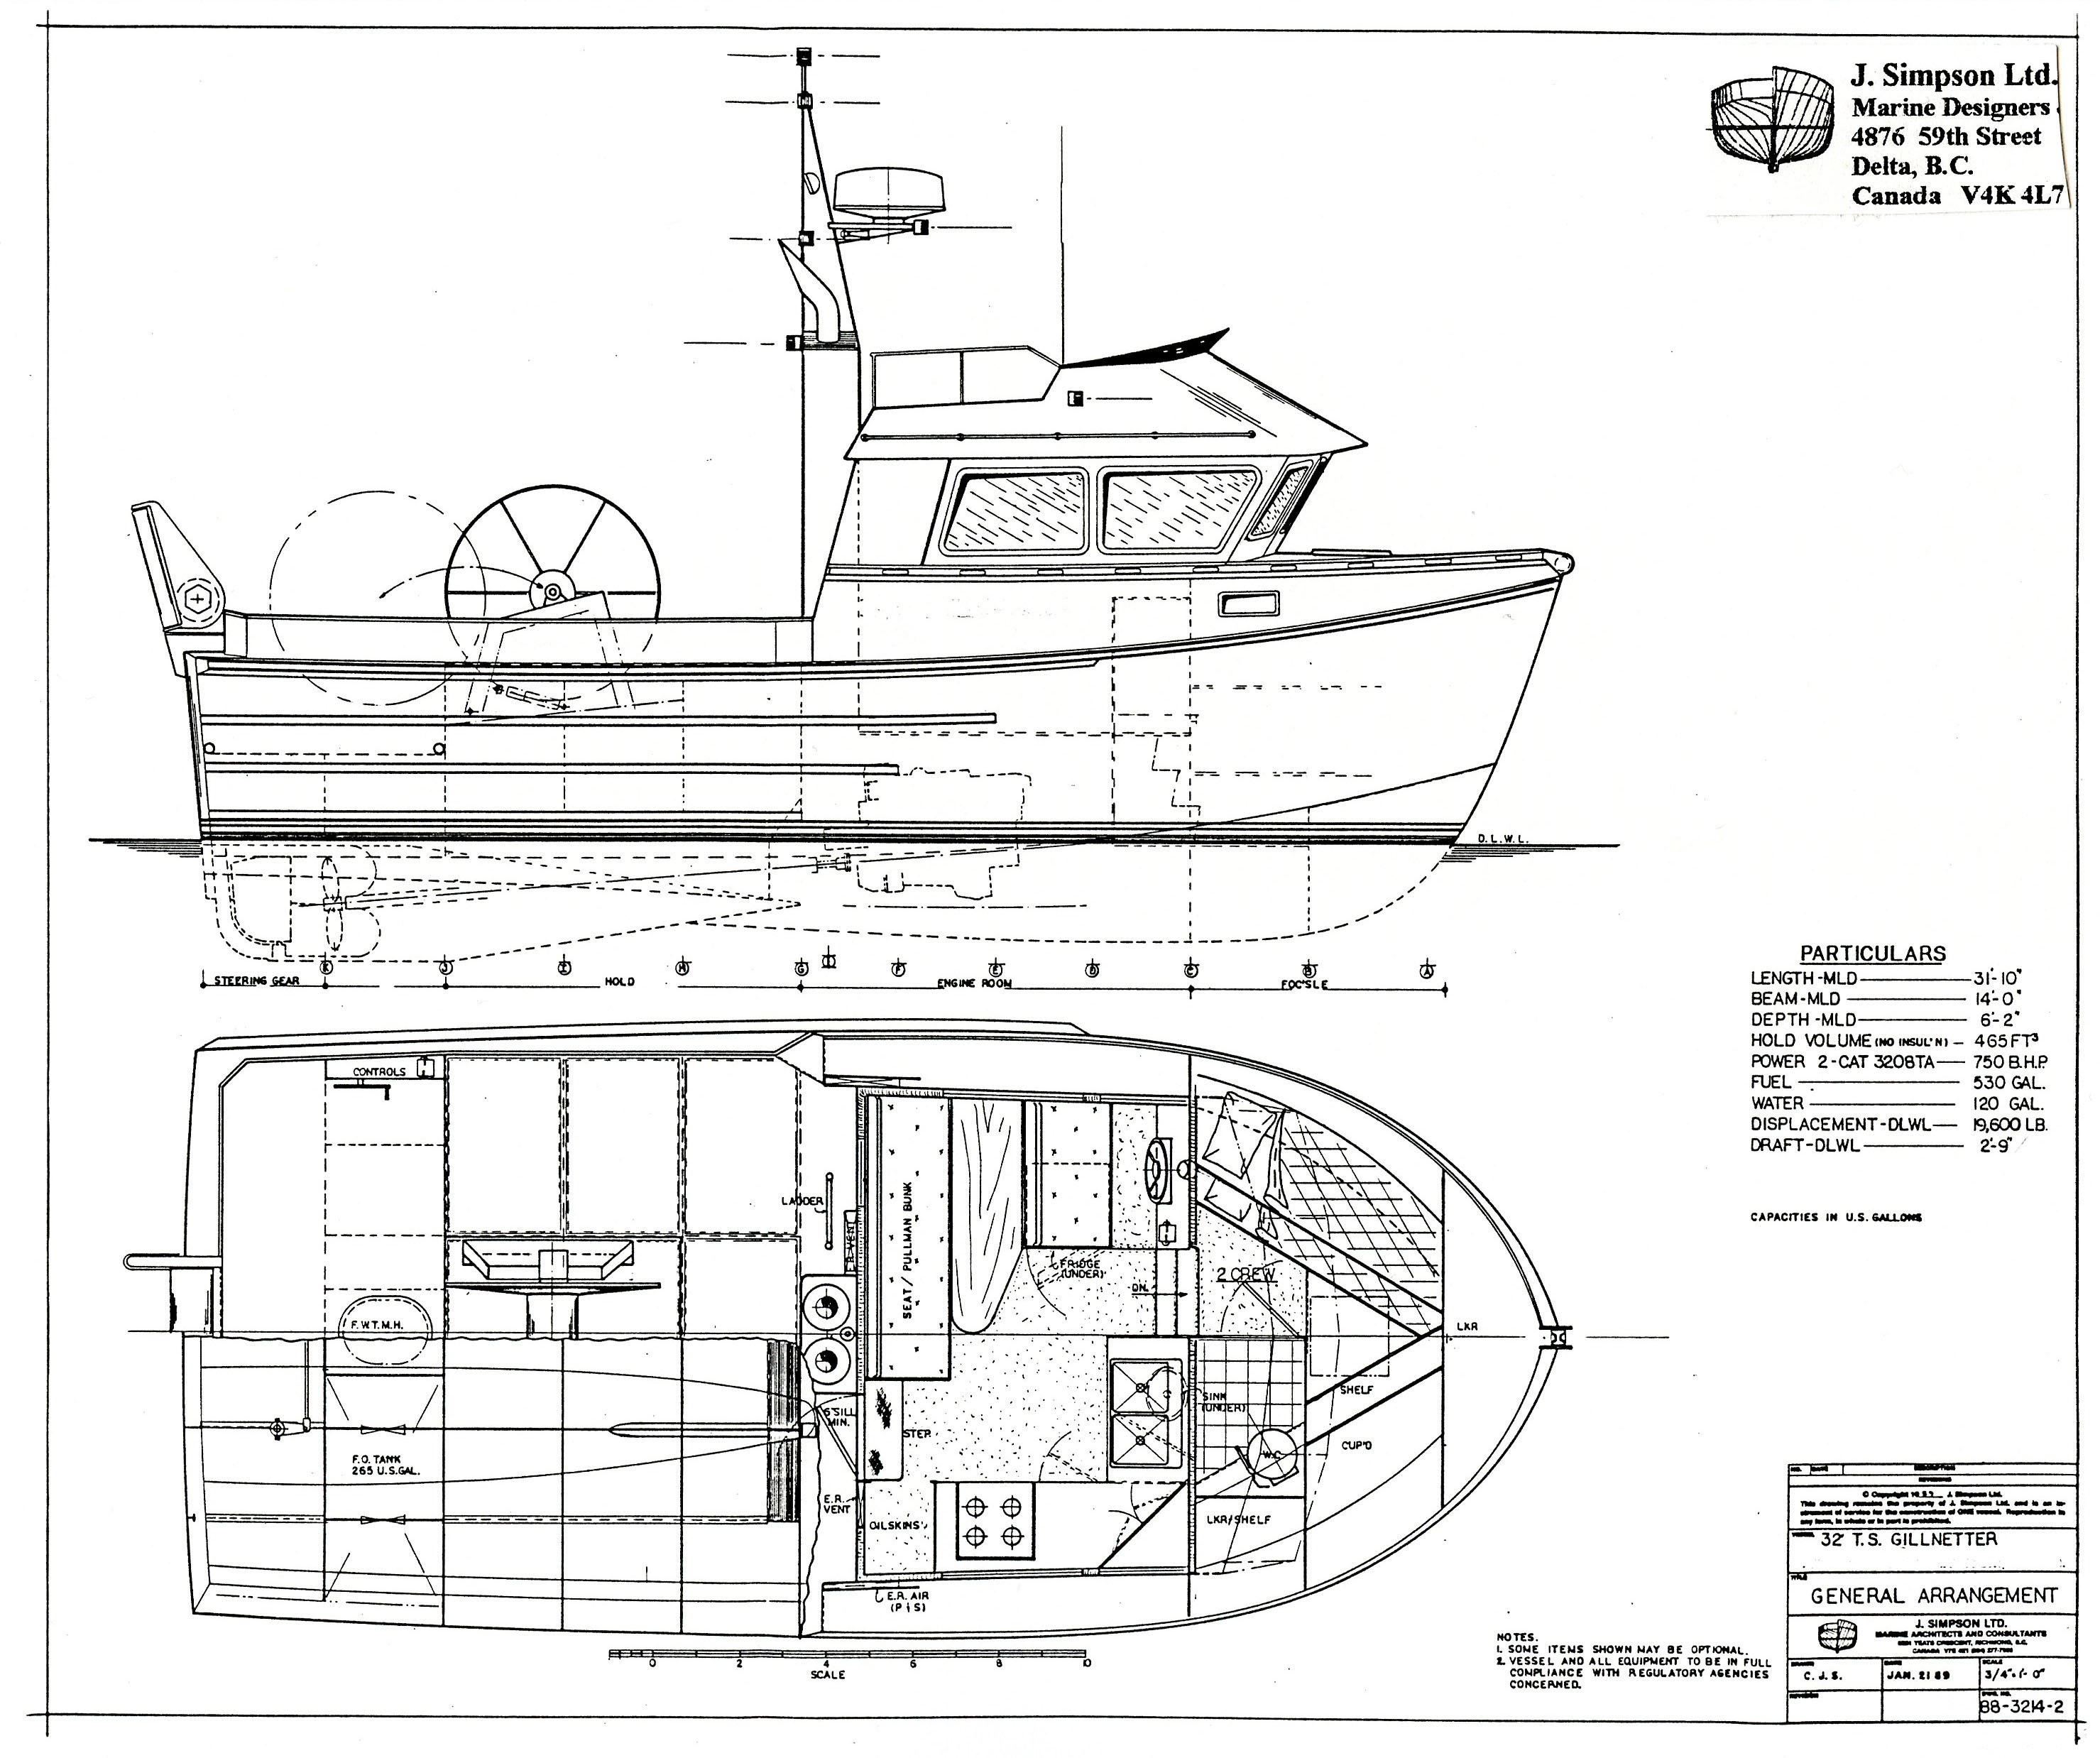 J. Simpson Ltd. Marine Designers and Consultants | 32ft ...